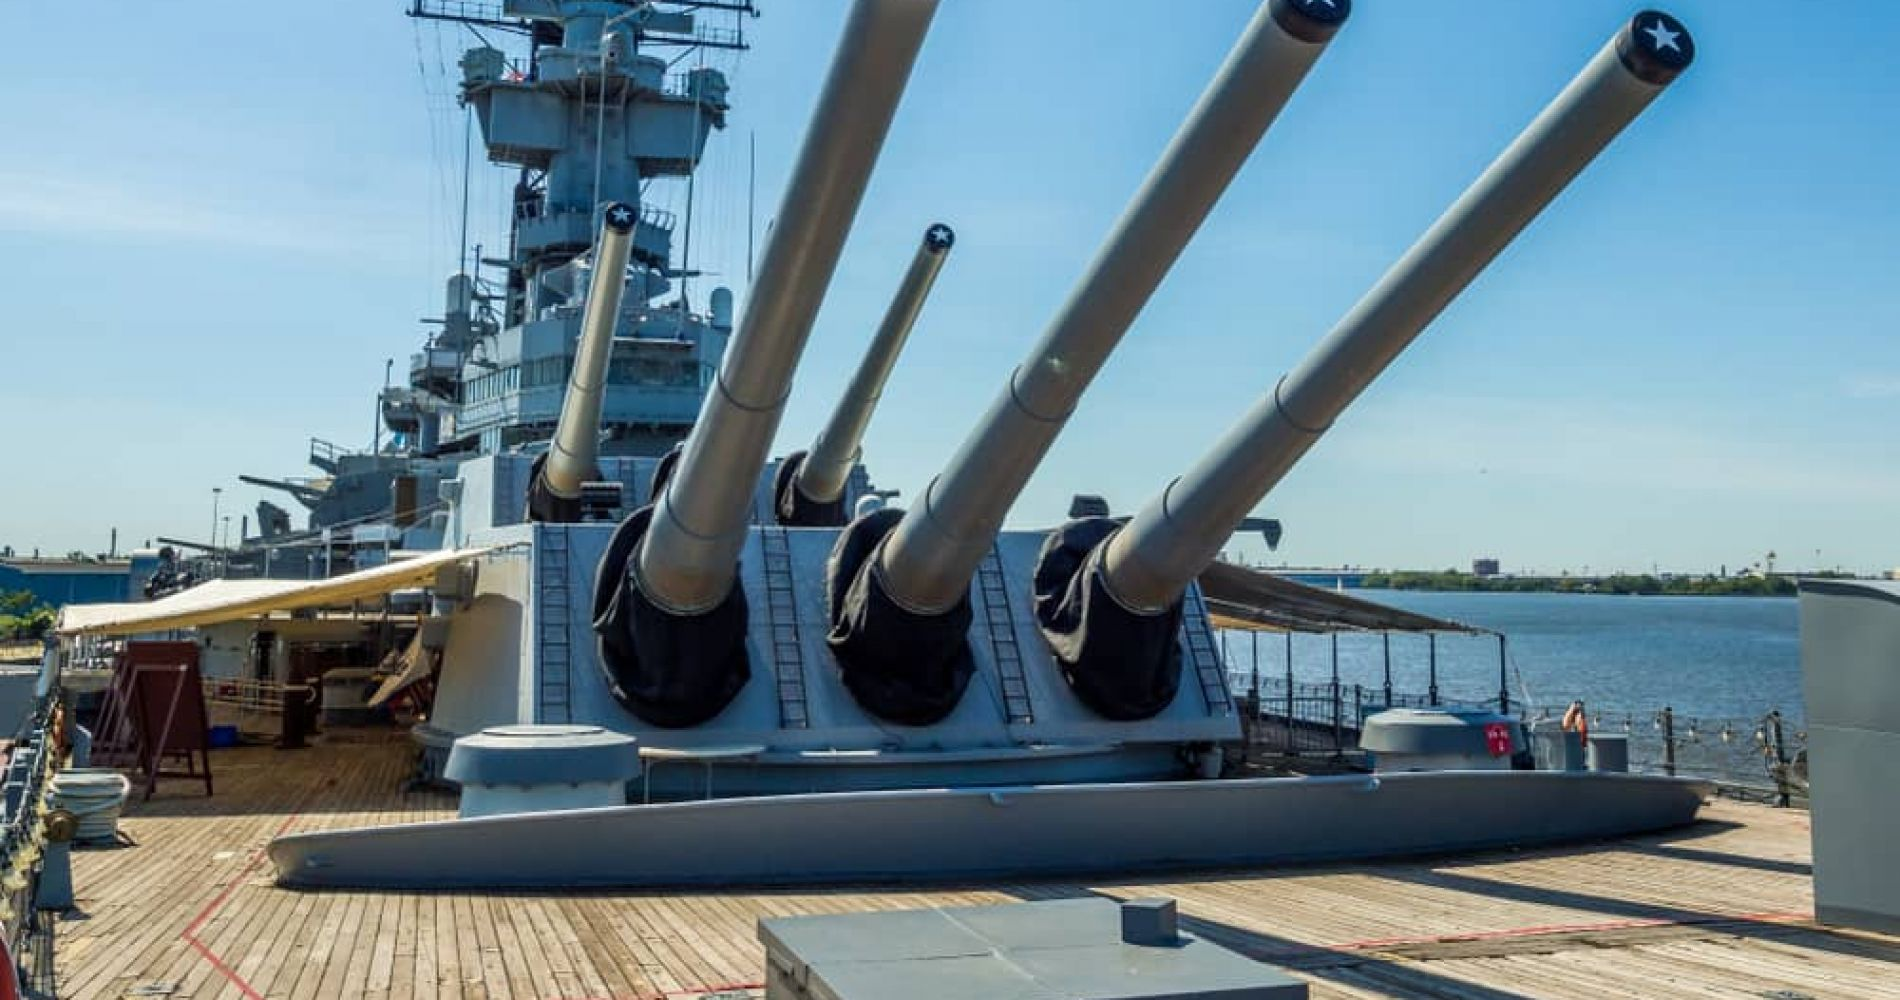 Battleship New Jersey Museum & Memorial and other attractions